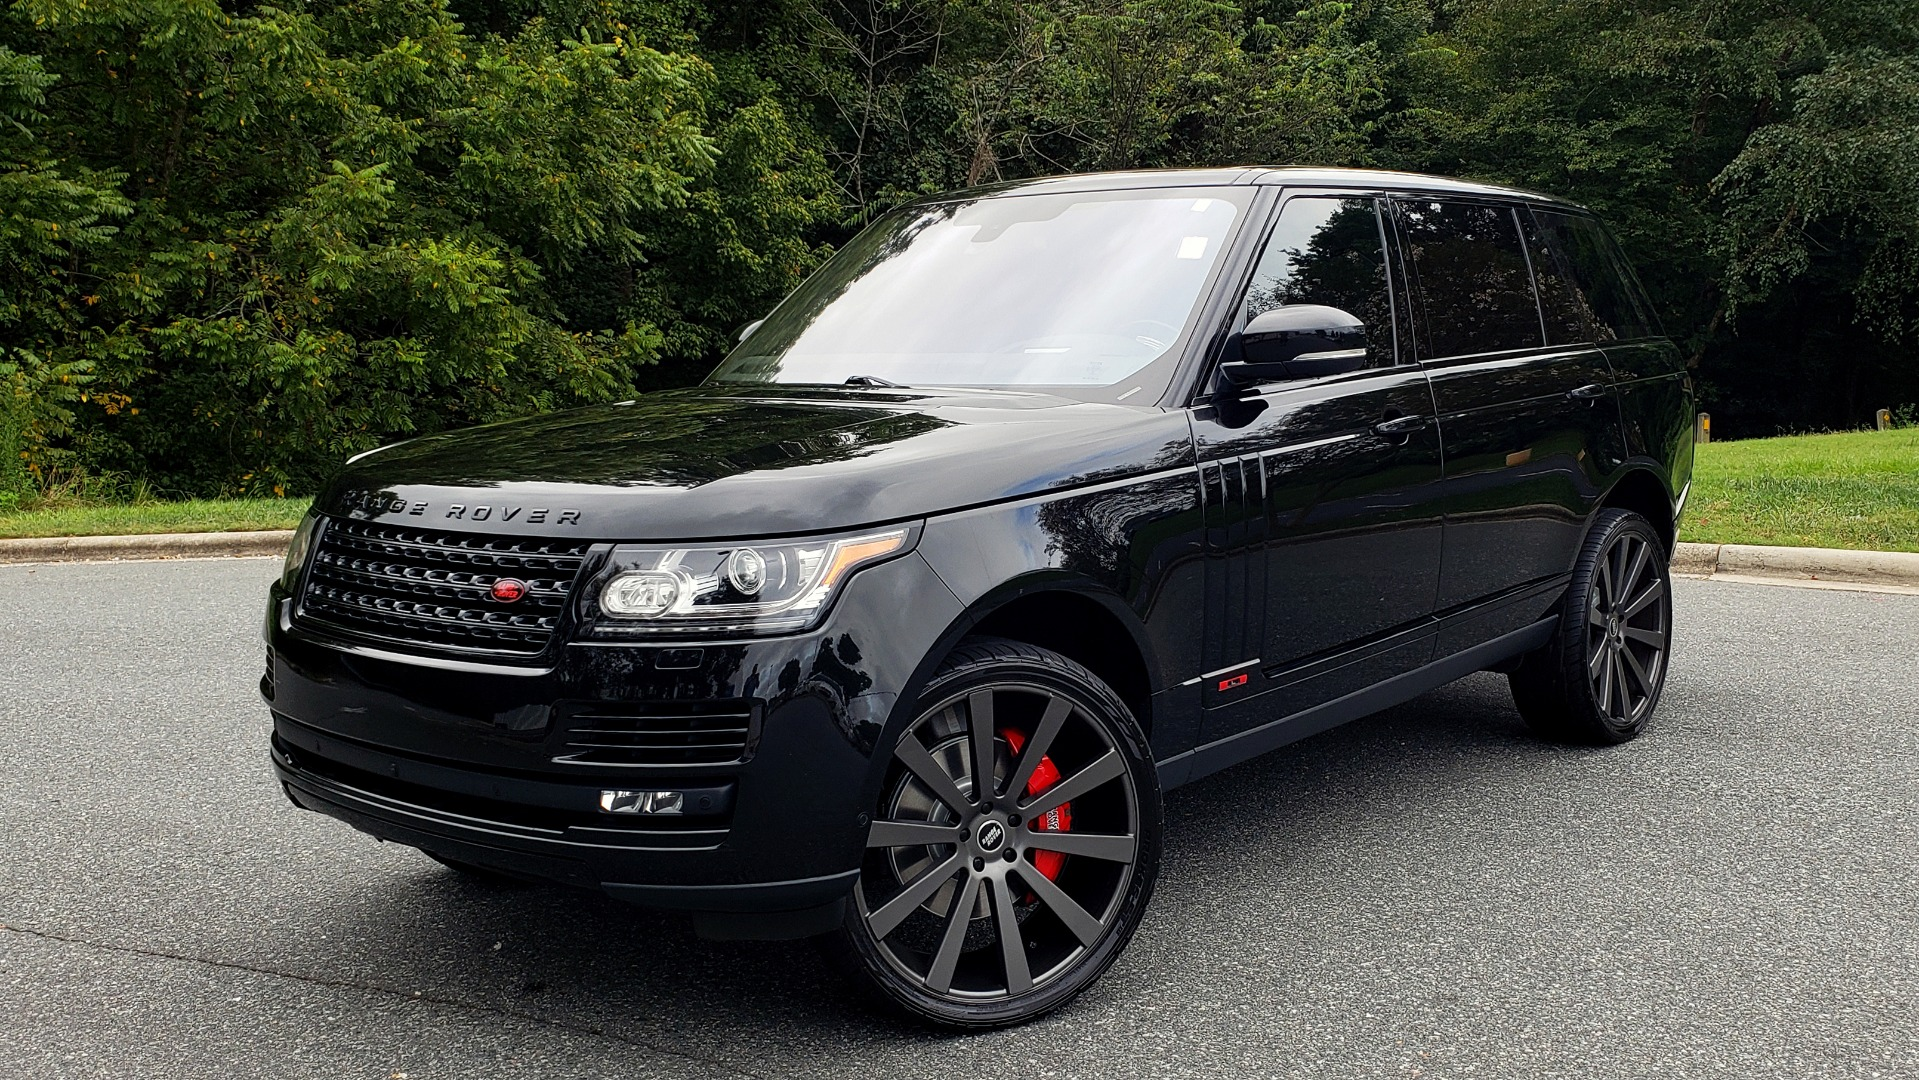 Used 2016 Land Rover RANGE ROVER AUTOBIOGRAPHY / SC-V8 / LWB / PANO-ROOF / NAV / MERIDIAN / ENT / REARVIEW for sale Sold at Formula Imports in Charlotte NC 28227 1